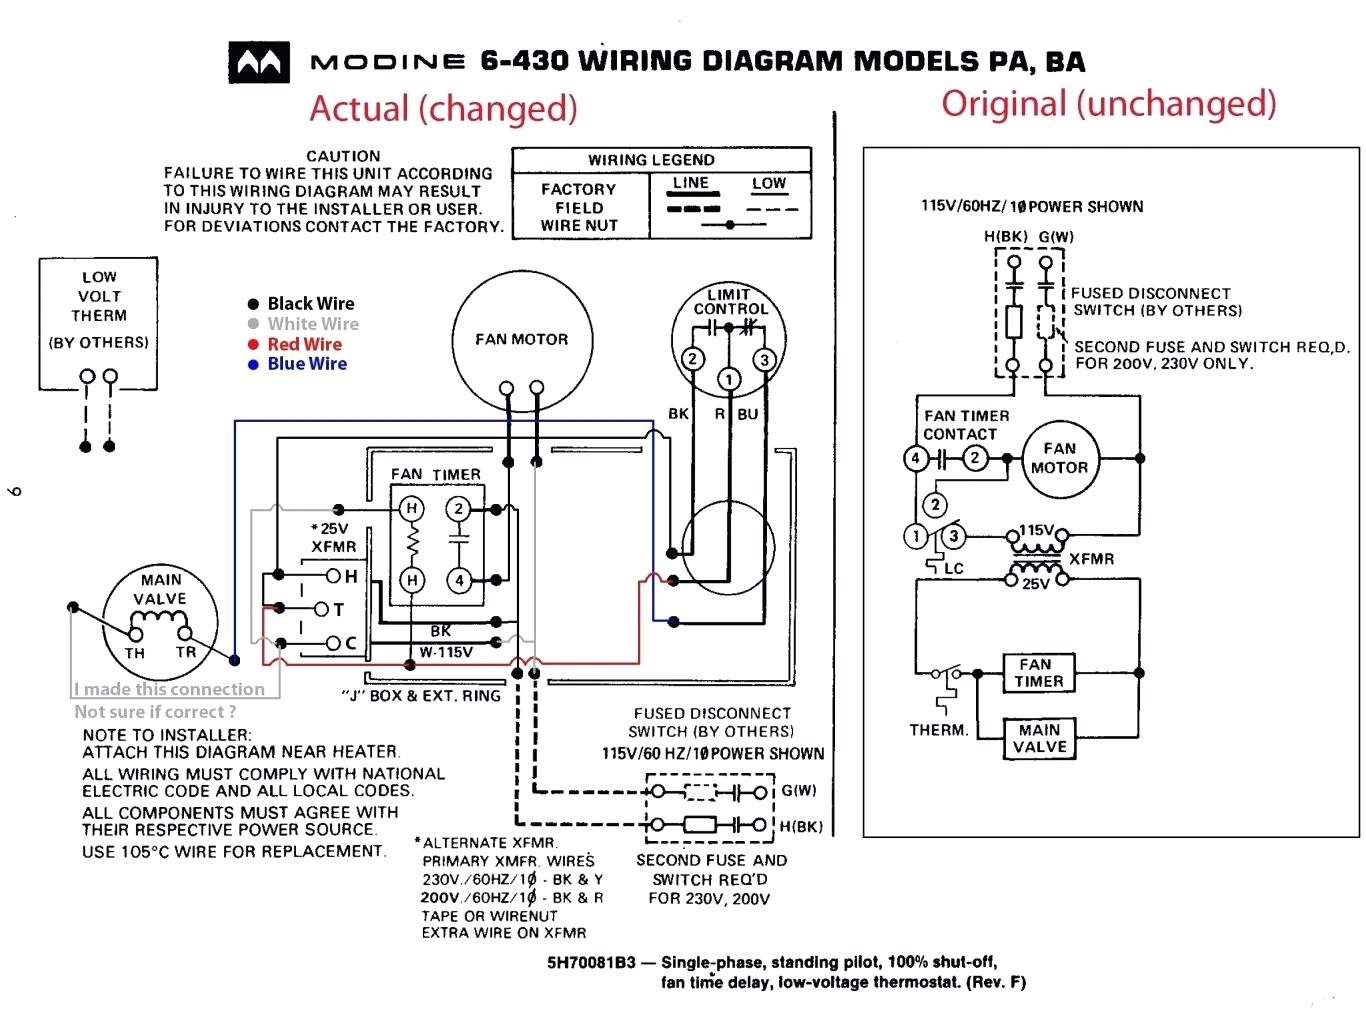 aube rc840t 240 wiring diagram Collection-Aube Rc840t 240 Wiring Diagram Inspirational Furnace thermostat Wiring Diagram Rv Shower Valves thermostatic 9-r